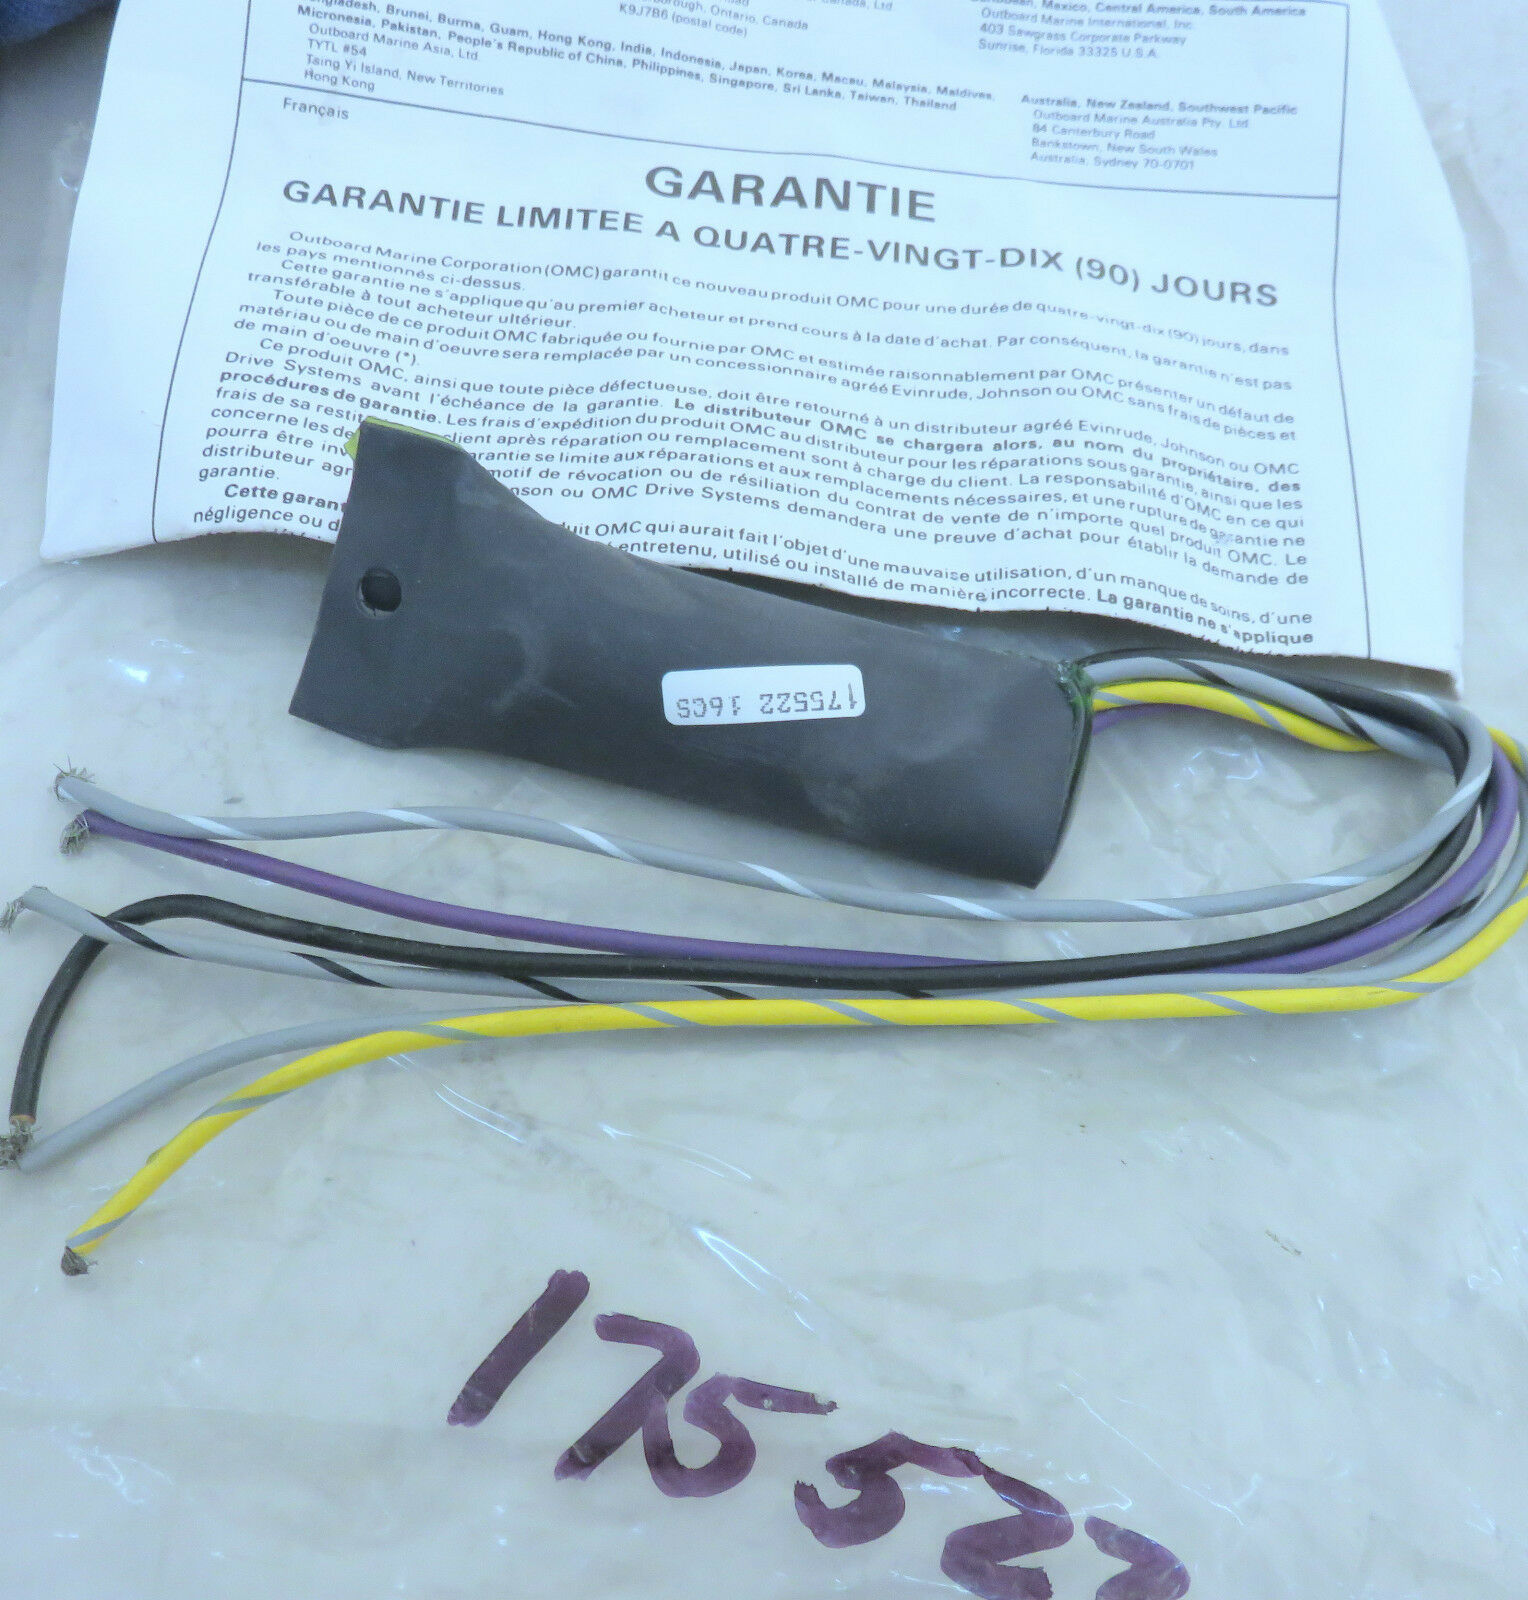 B31 New Omc Johnson Evinrude 0434877 Throttle Cable Factory Instrument Tach Wiring Harness 174732 C4a 175522 Twin Engine Tachometer Synchronizer S L1600 28003631358